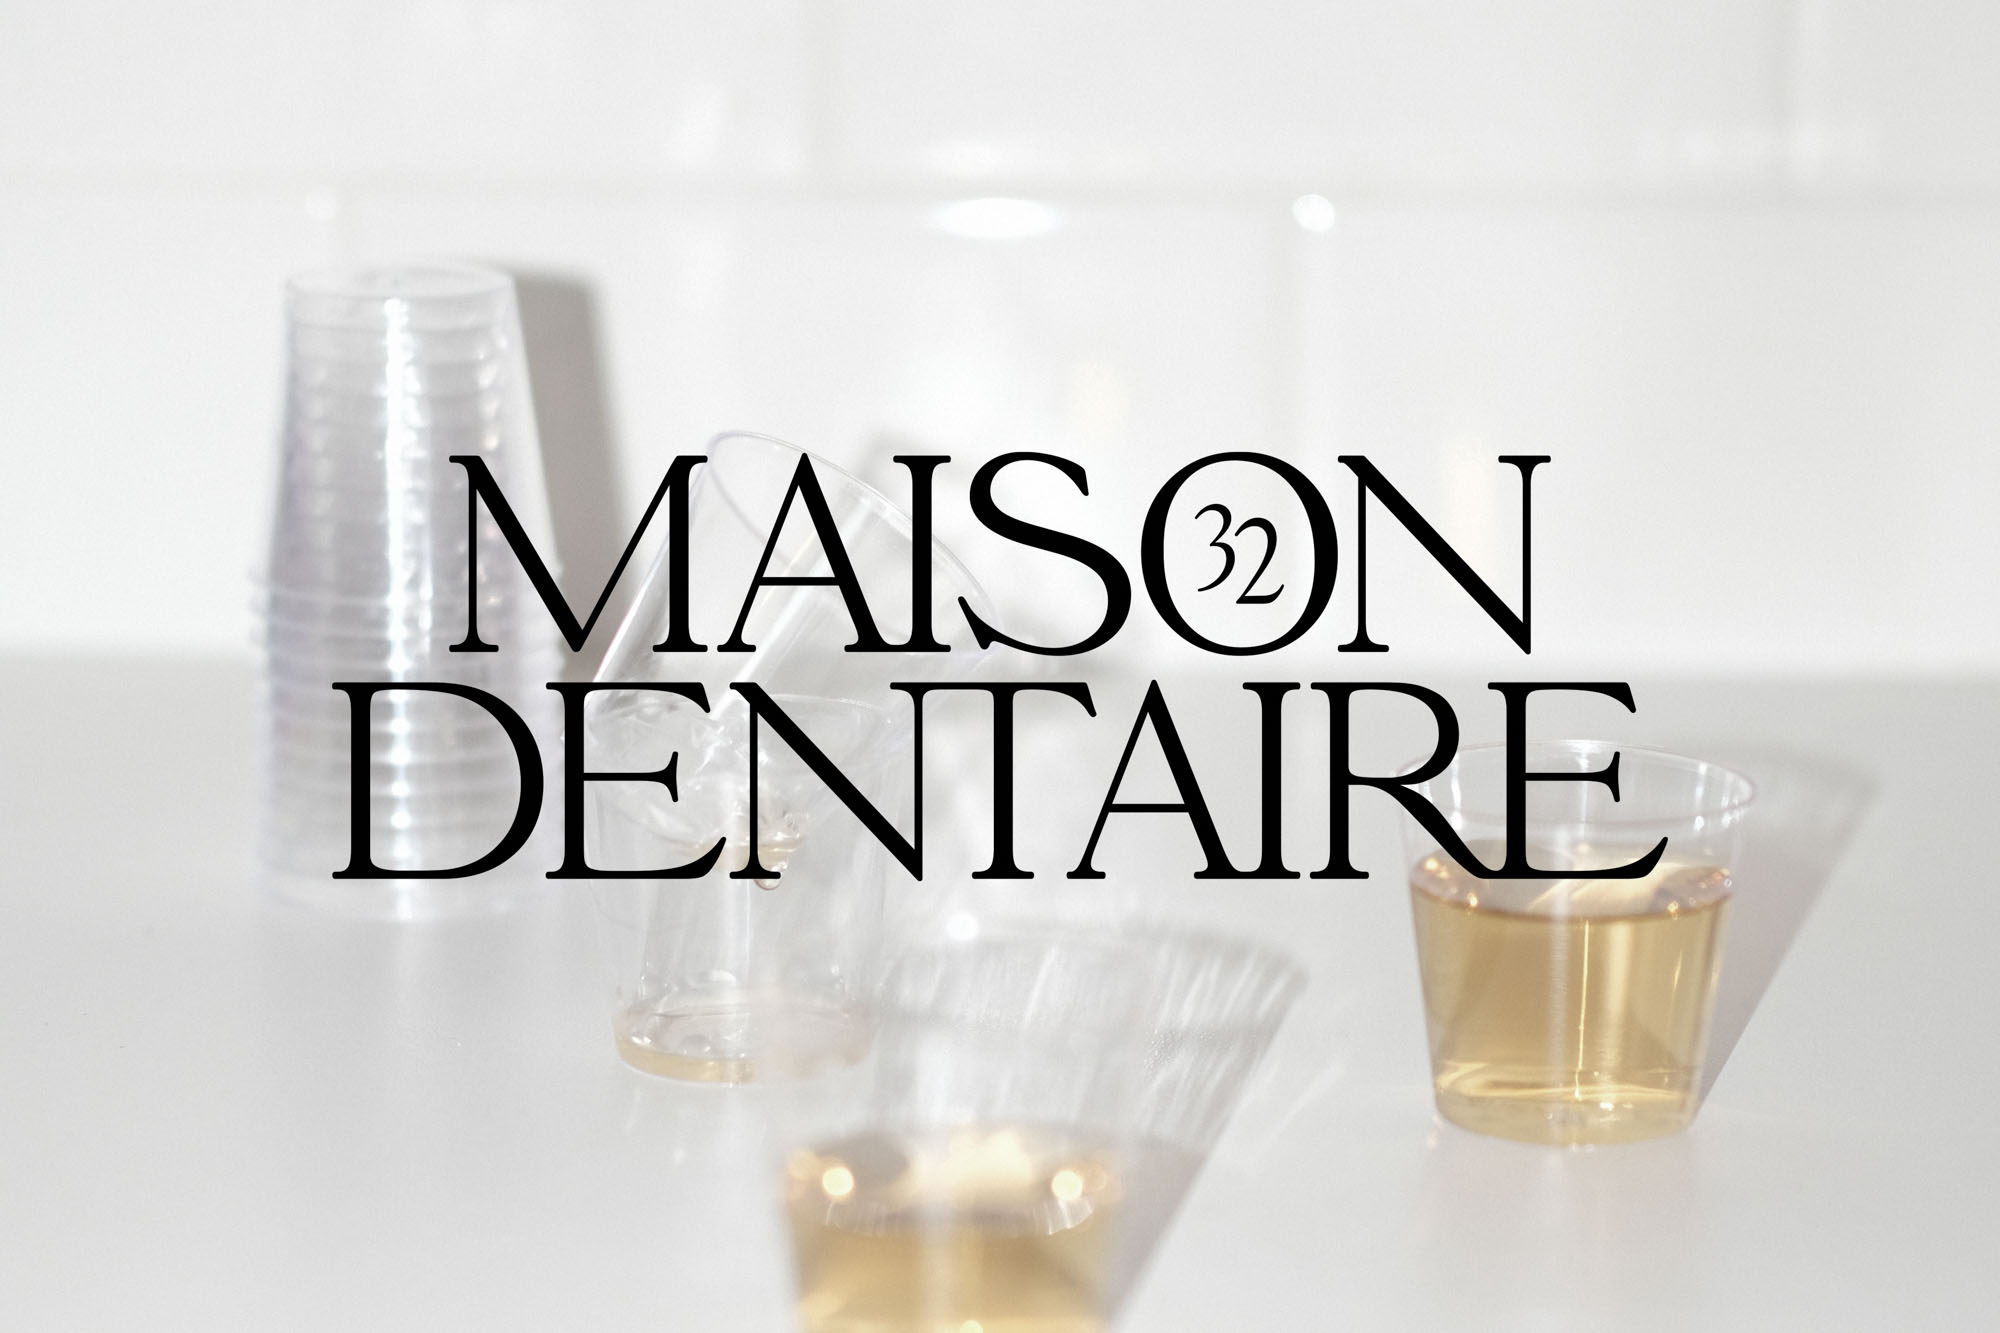 Maison Dentaire—No32 TDC ECV